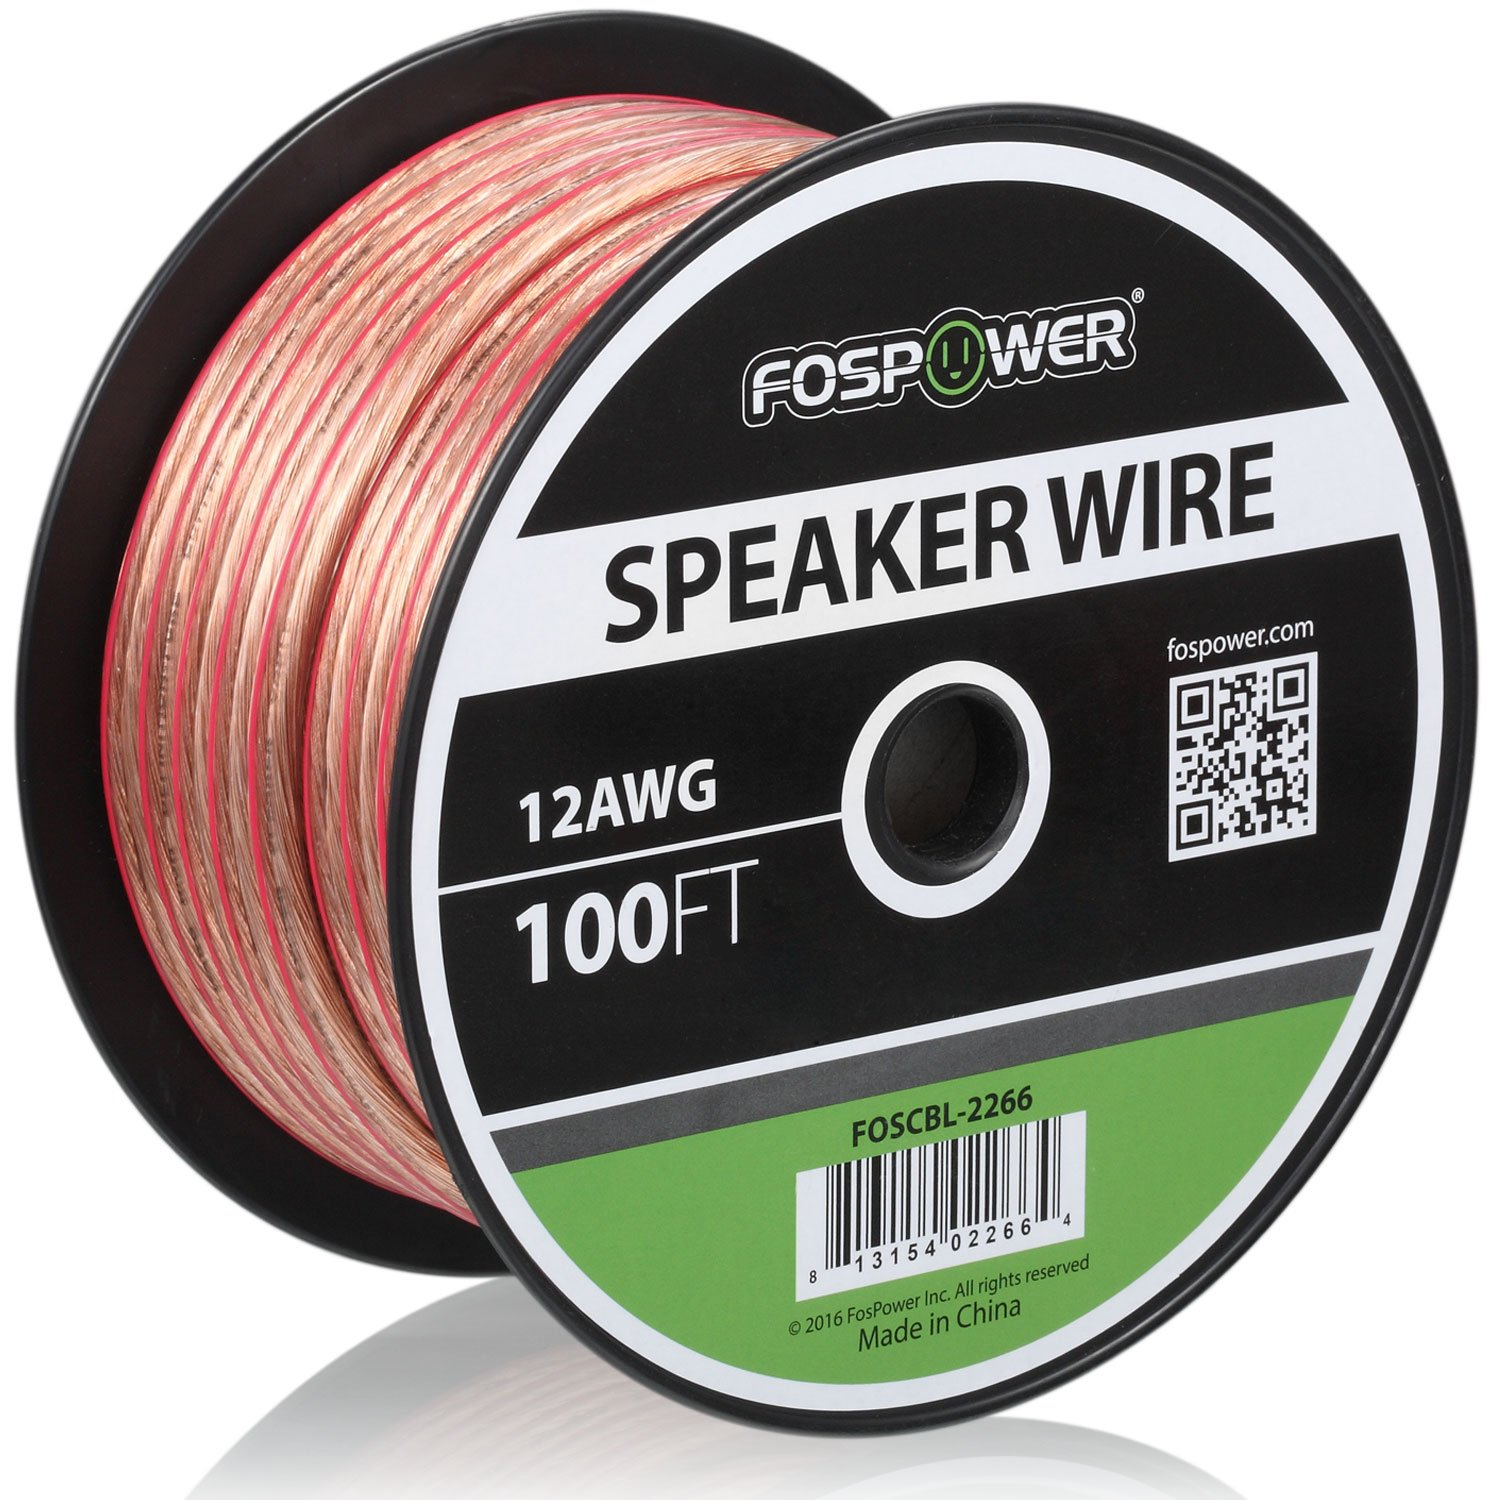 Amazon.com: FosPower 12AWG Speaker Wire [12 Gauge | 100 FT] Premium ...